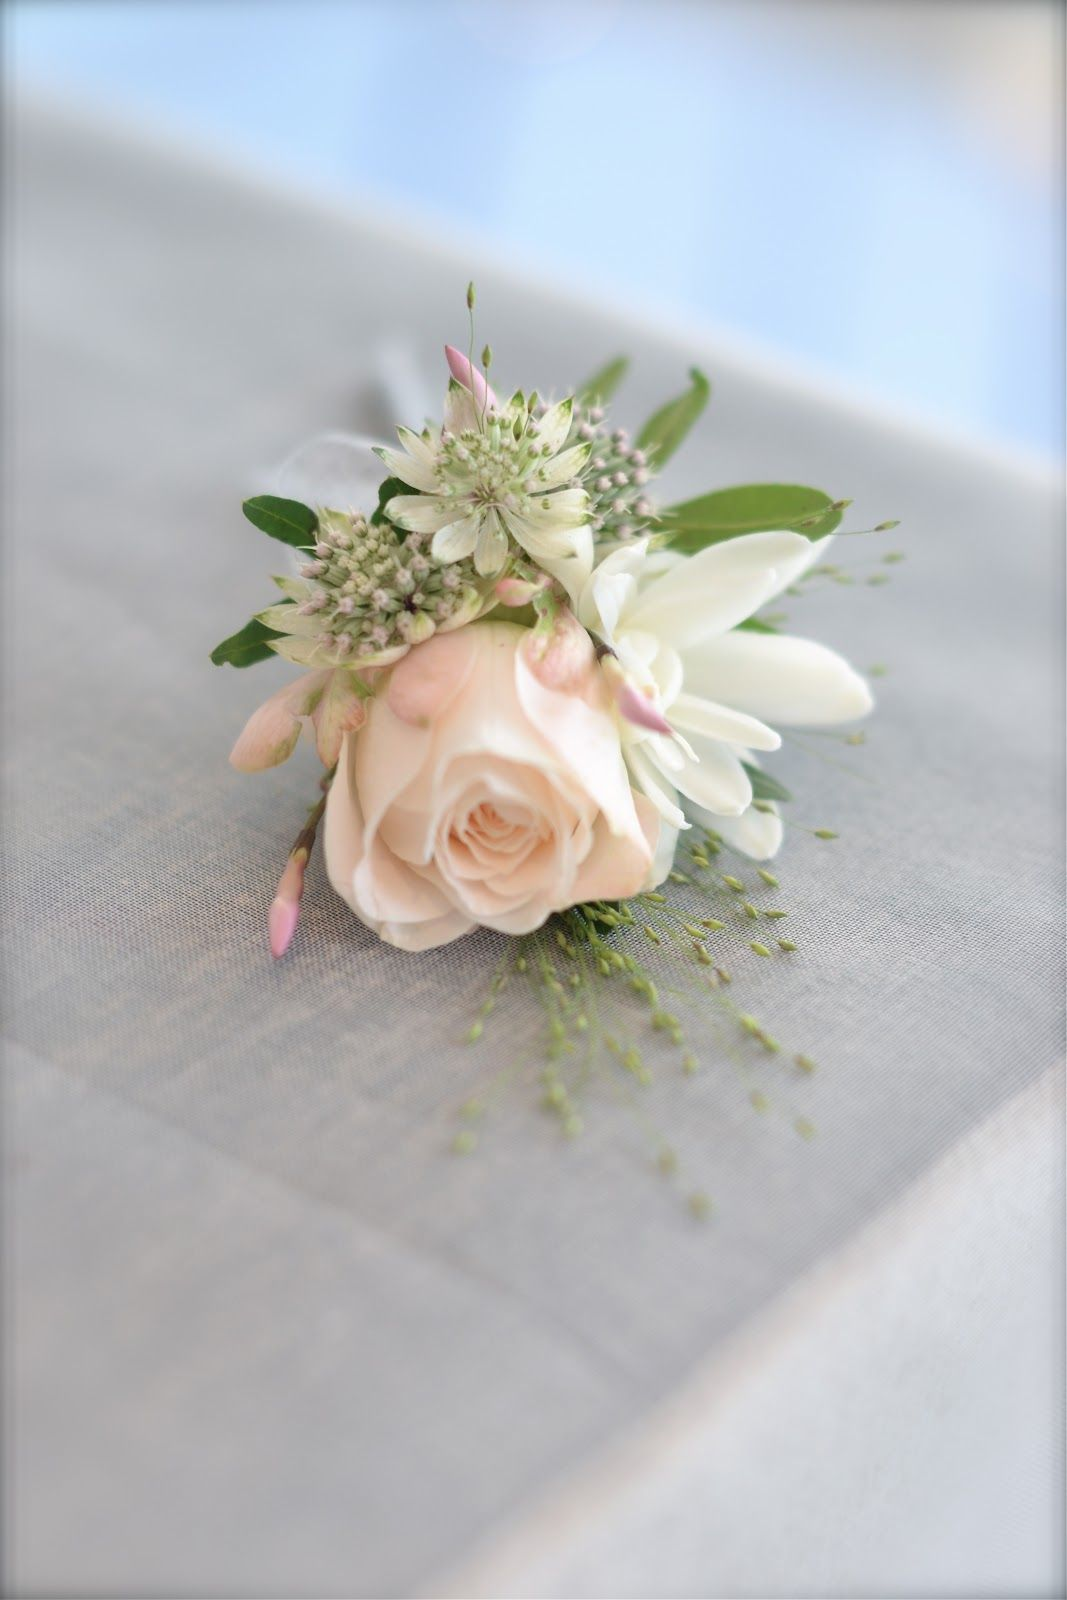 Wedding bouquets without roses  Groom buttonhole idea Rose with complimenting flowers and foliage